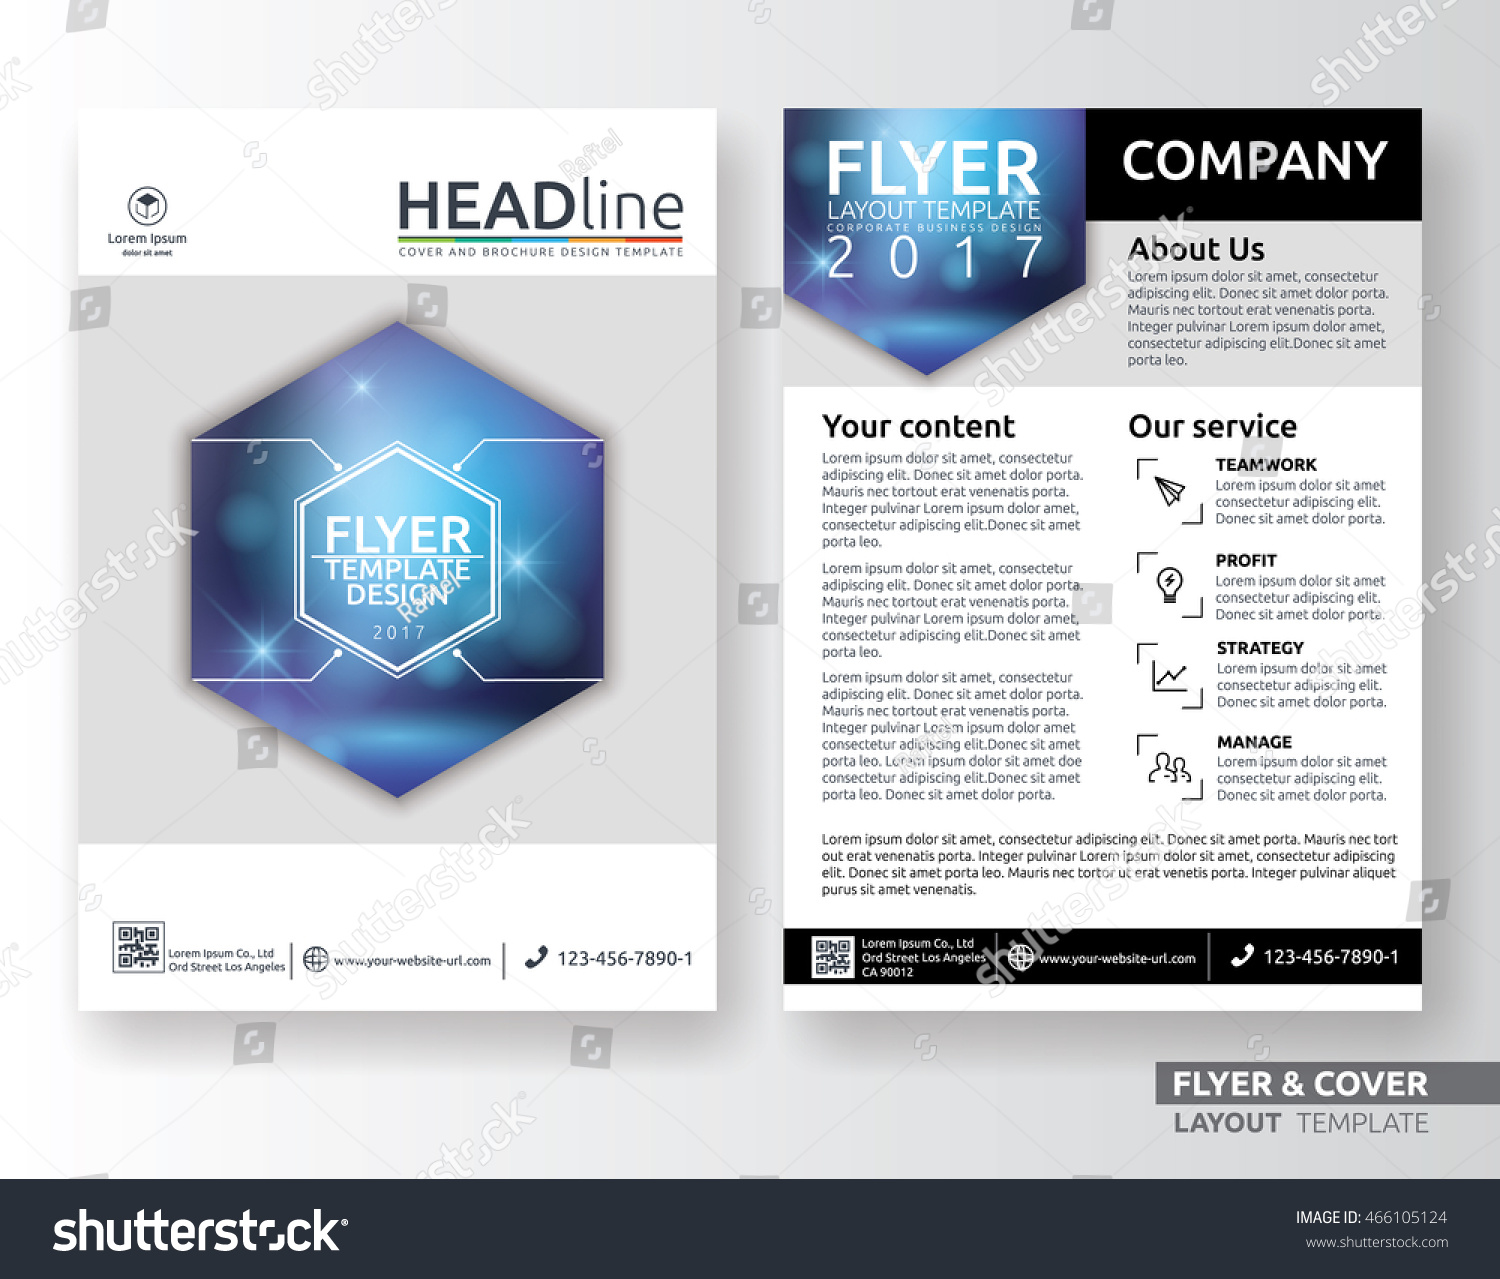 Cute Business Leaflet Template Images - Entry Level Resume Templates ...